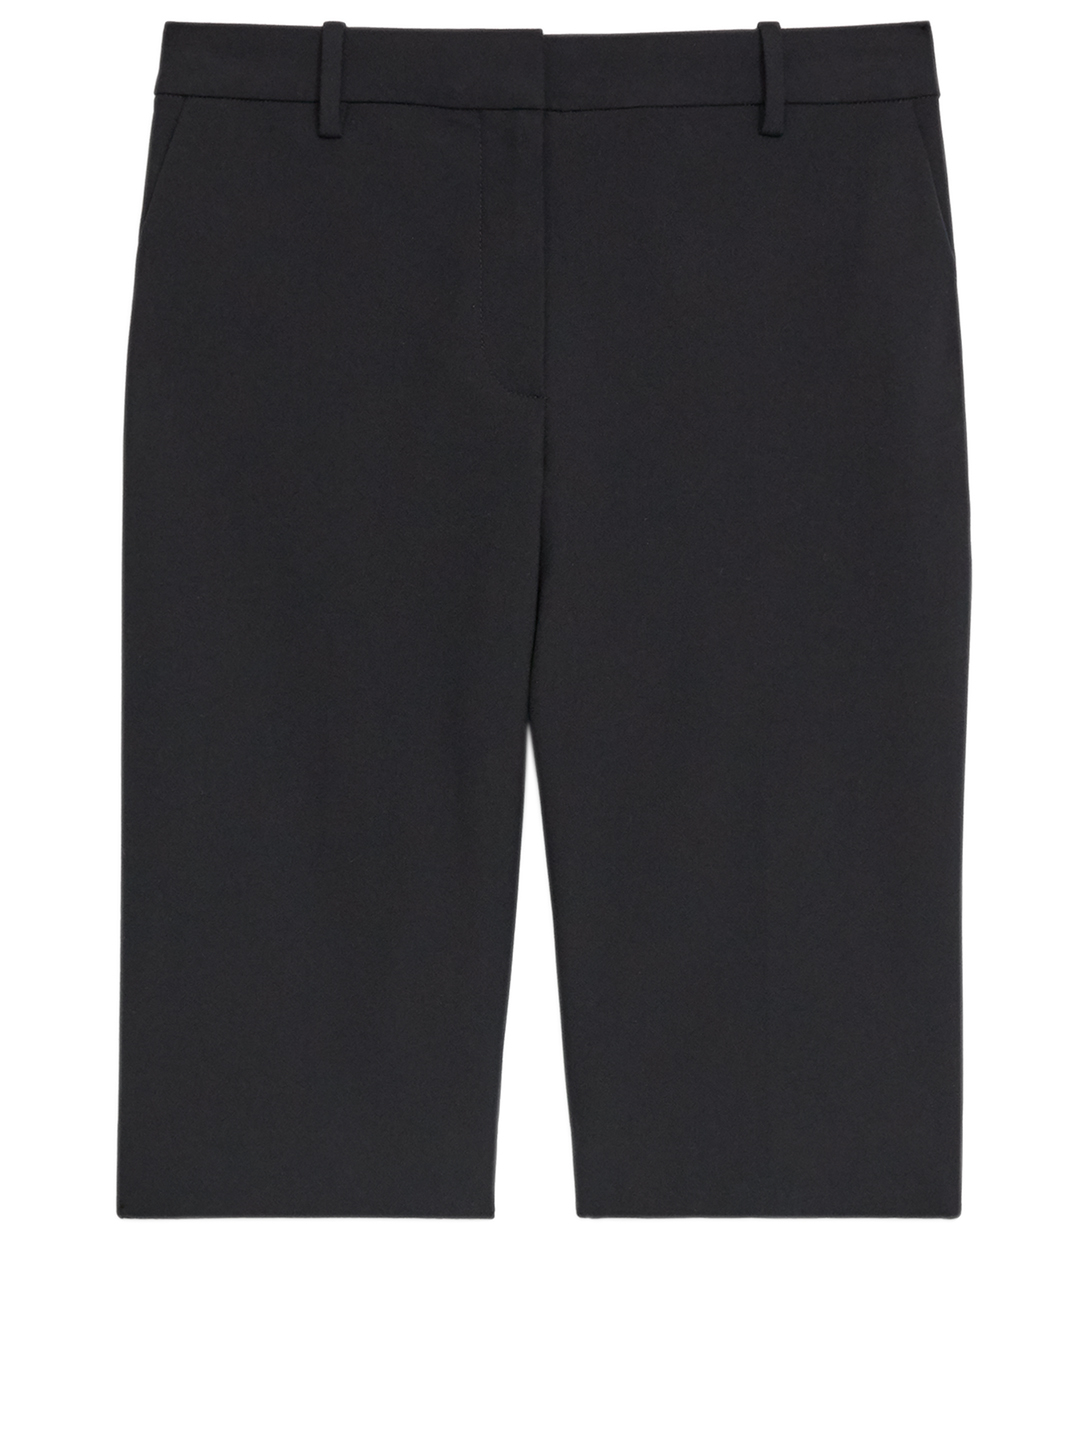 THEORY Treeca Cotton Stretch Shorts Women's Black